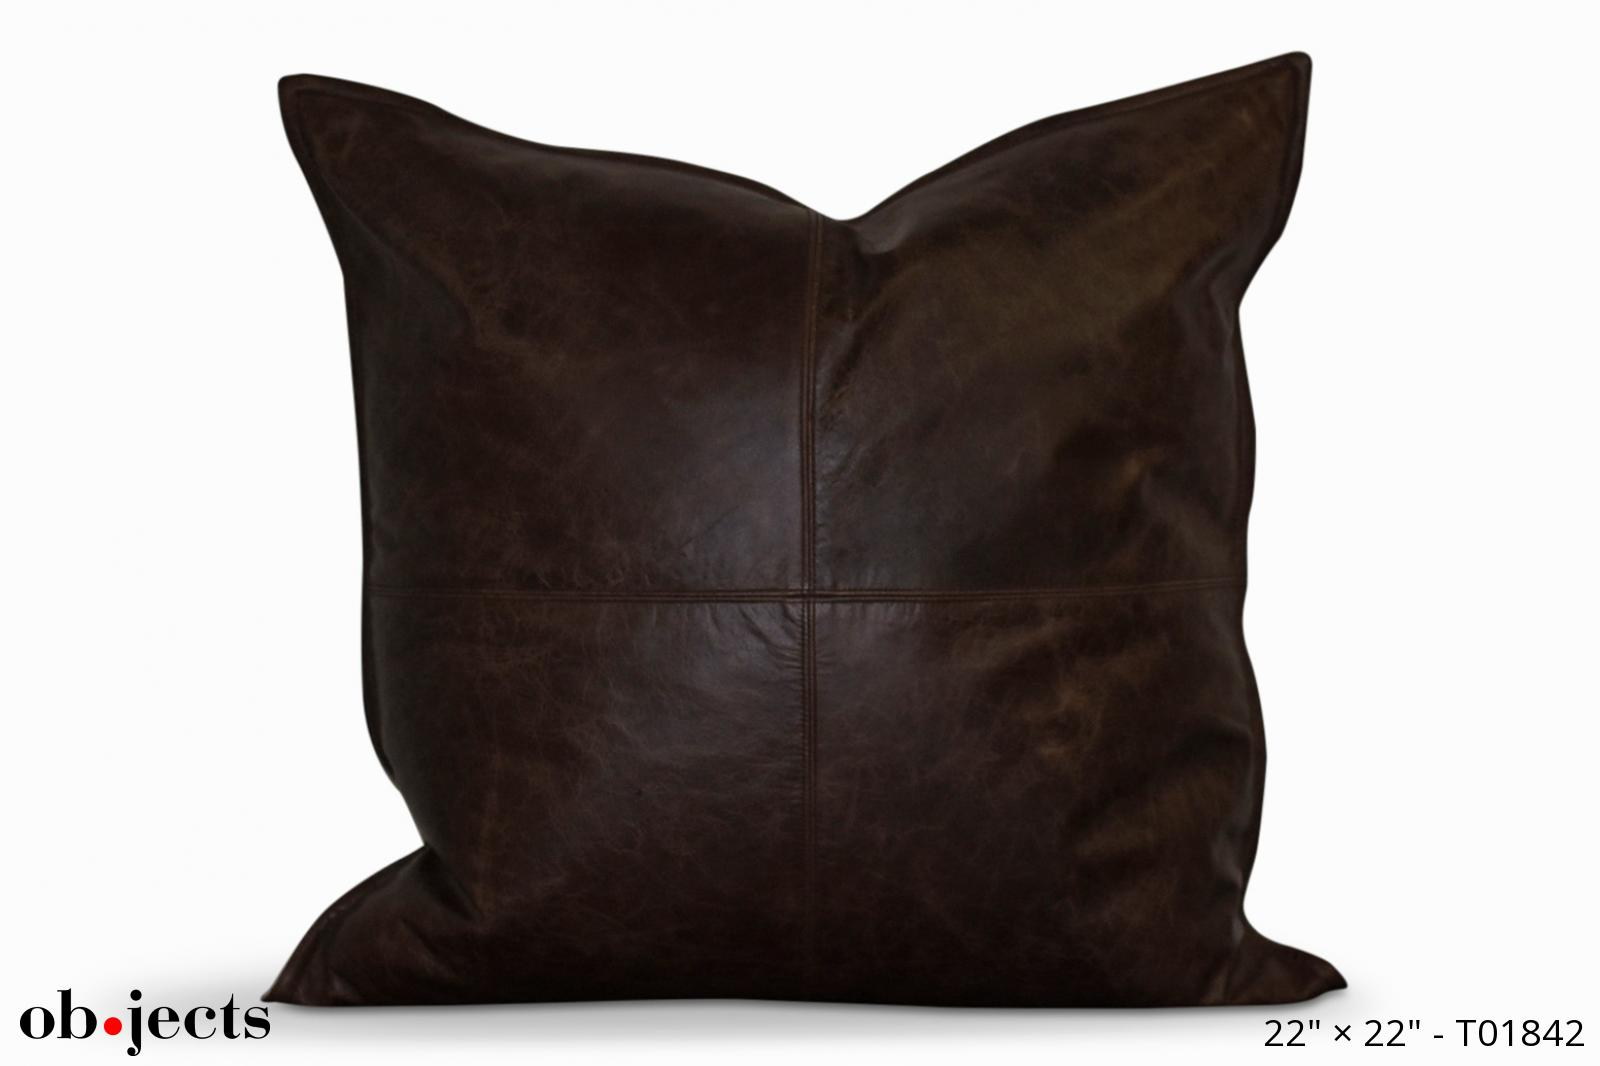 pillow dark brown leather ob jects